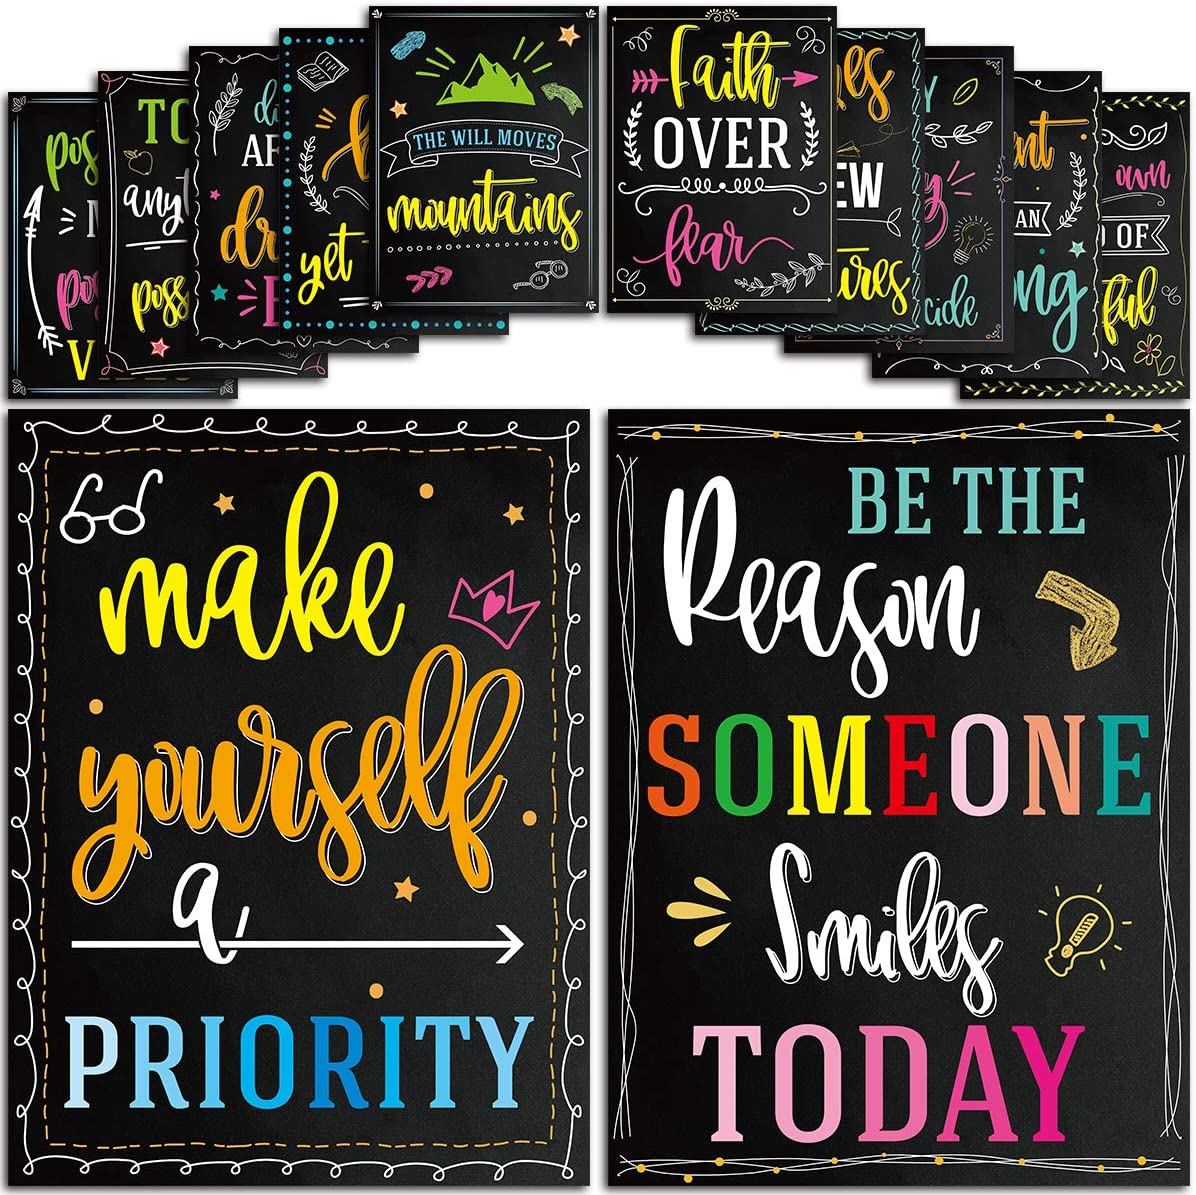 12 Pack Motivational Posters Inspirational Quotes Posters Wall Art for Students Teachers Classroom Office Home Decorations 12 x 16 Inches